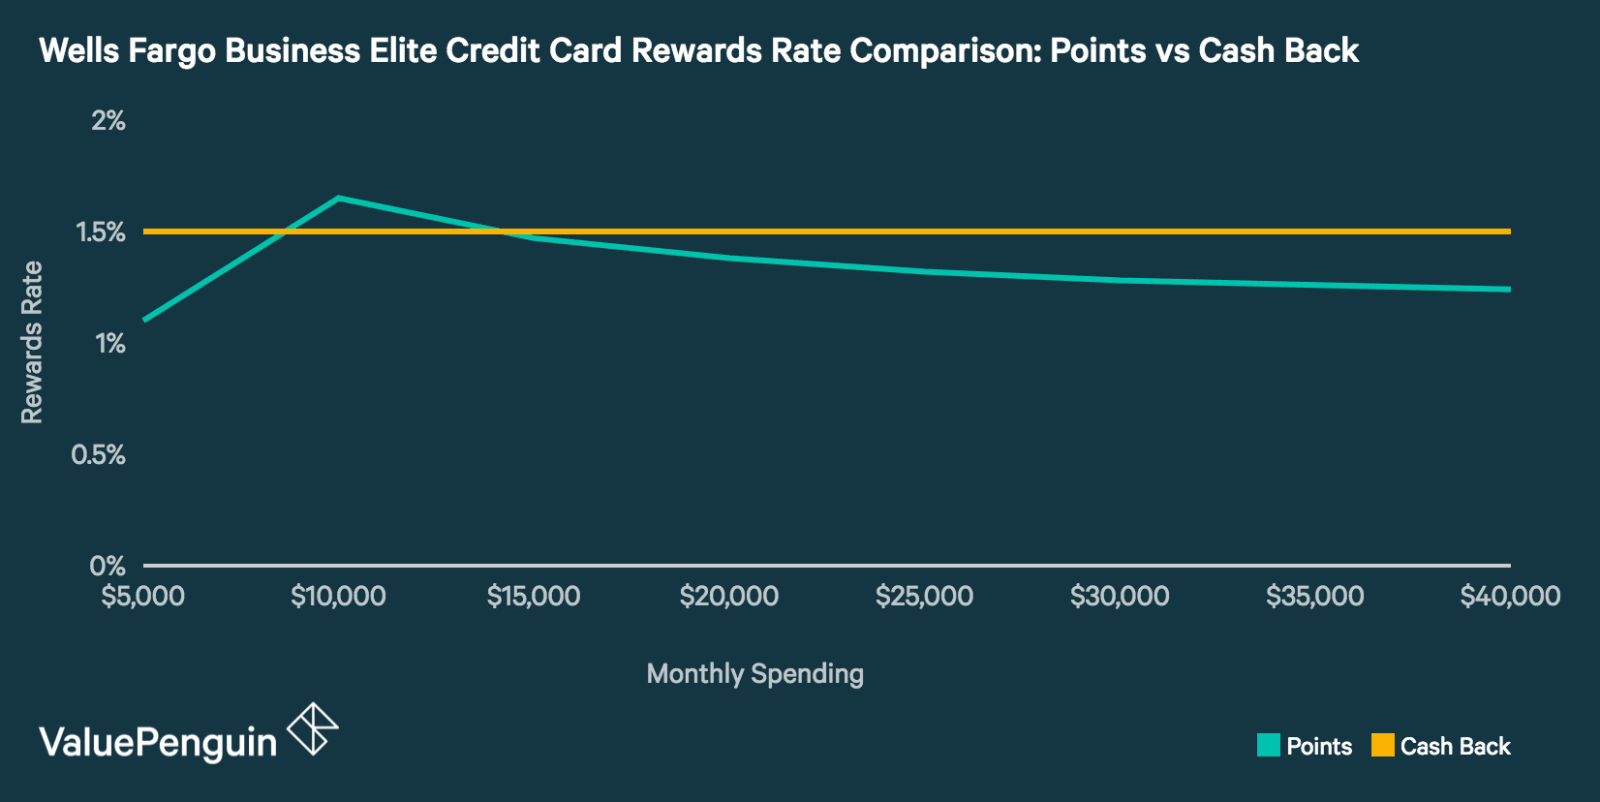 Wells fargo business elite card review is it right for your comparing the rewards rate for using the wells fargo business elite credit card as a points reheart Image collections